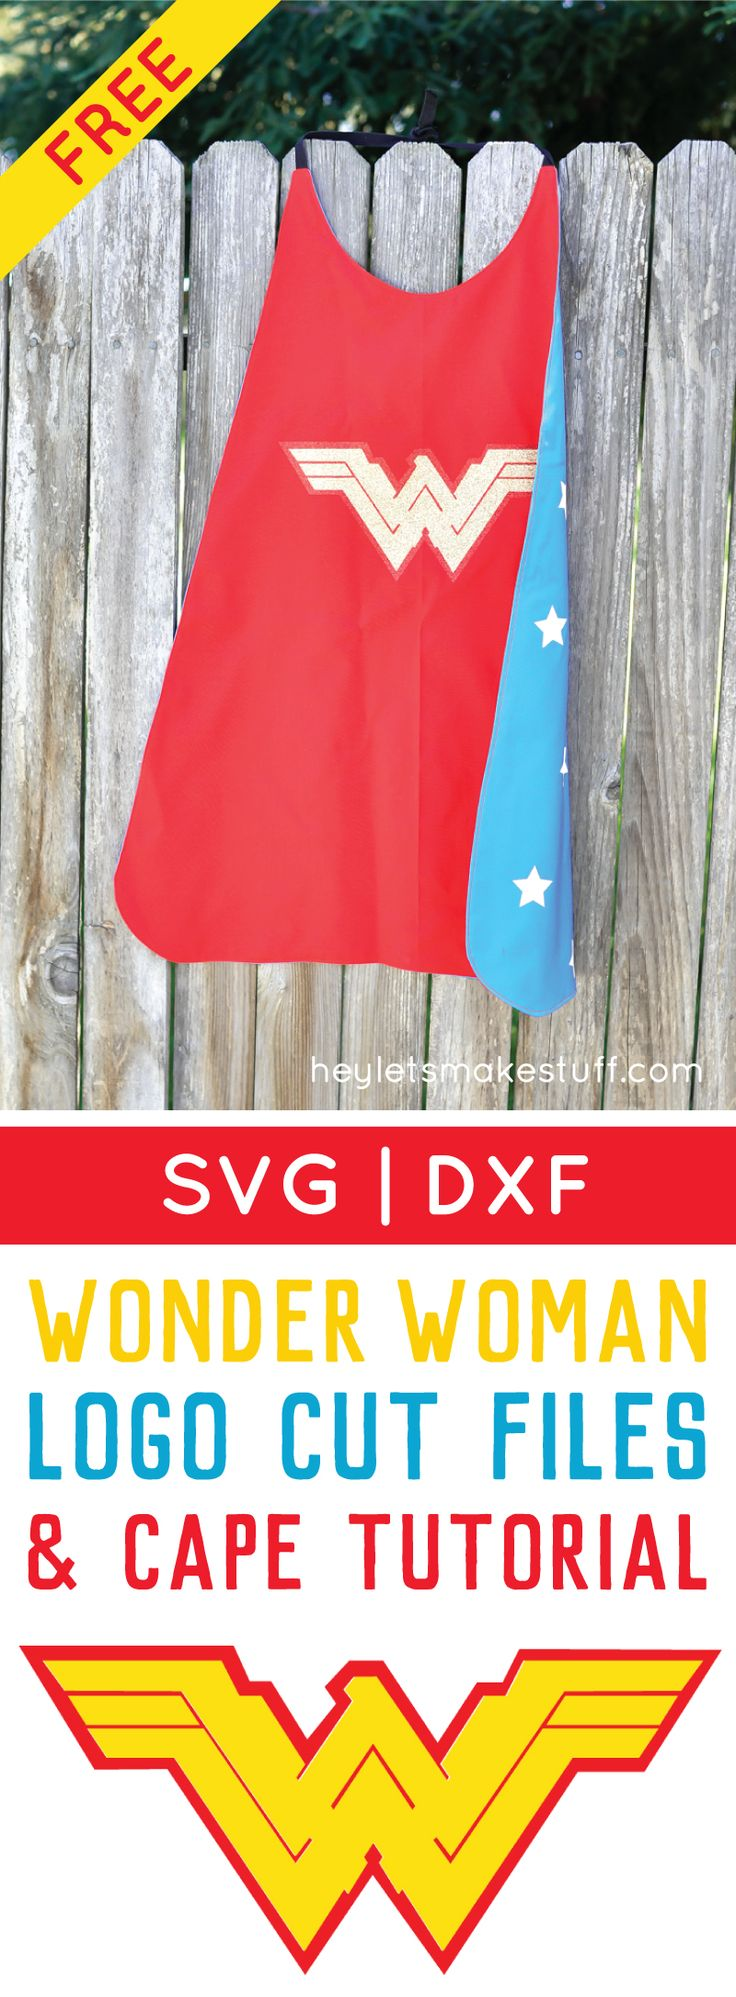 Wonder Woman gets an update in the new Batman v Superman movie! Get the free cut file for her new logo, plus learn how to sew a quick Wonder Woman cape.